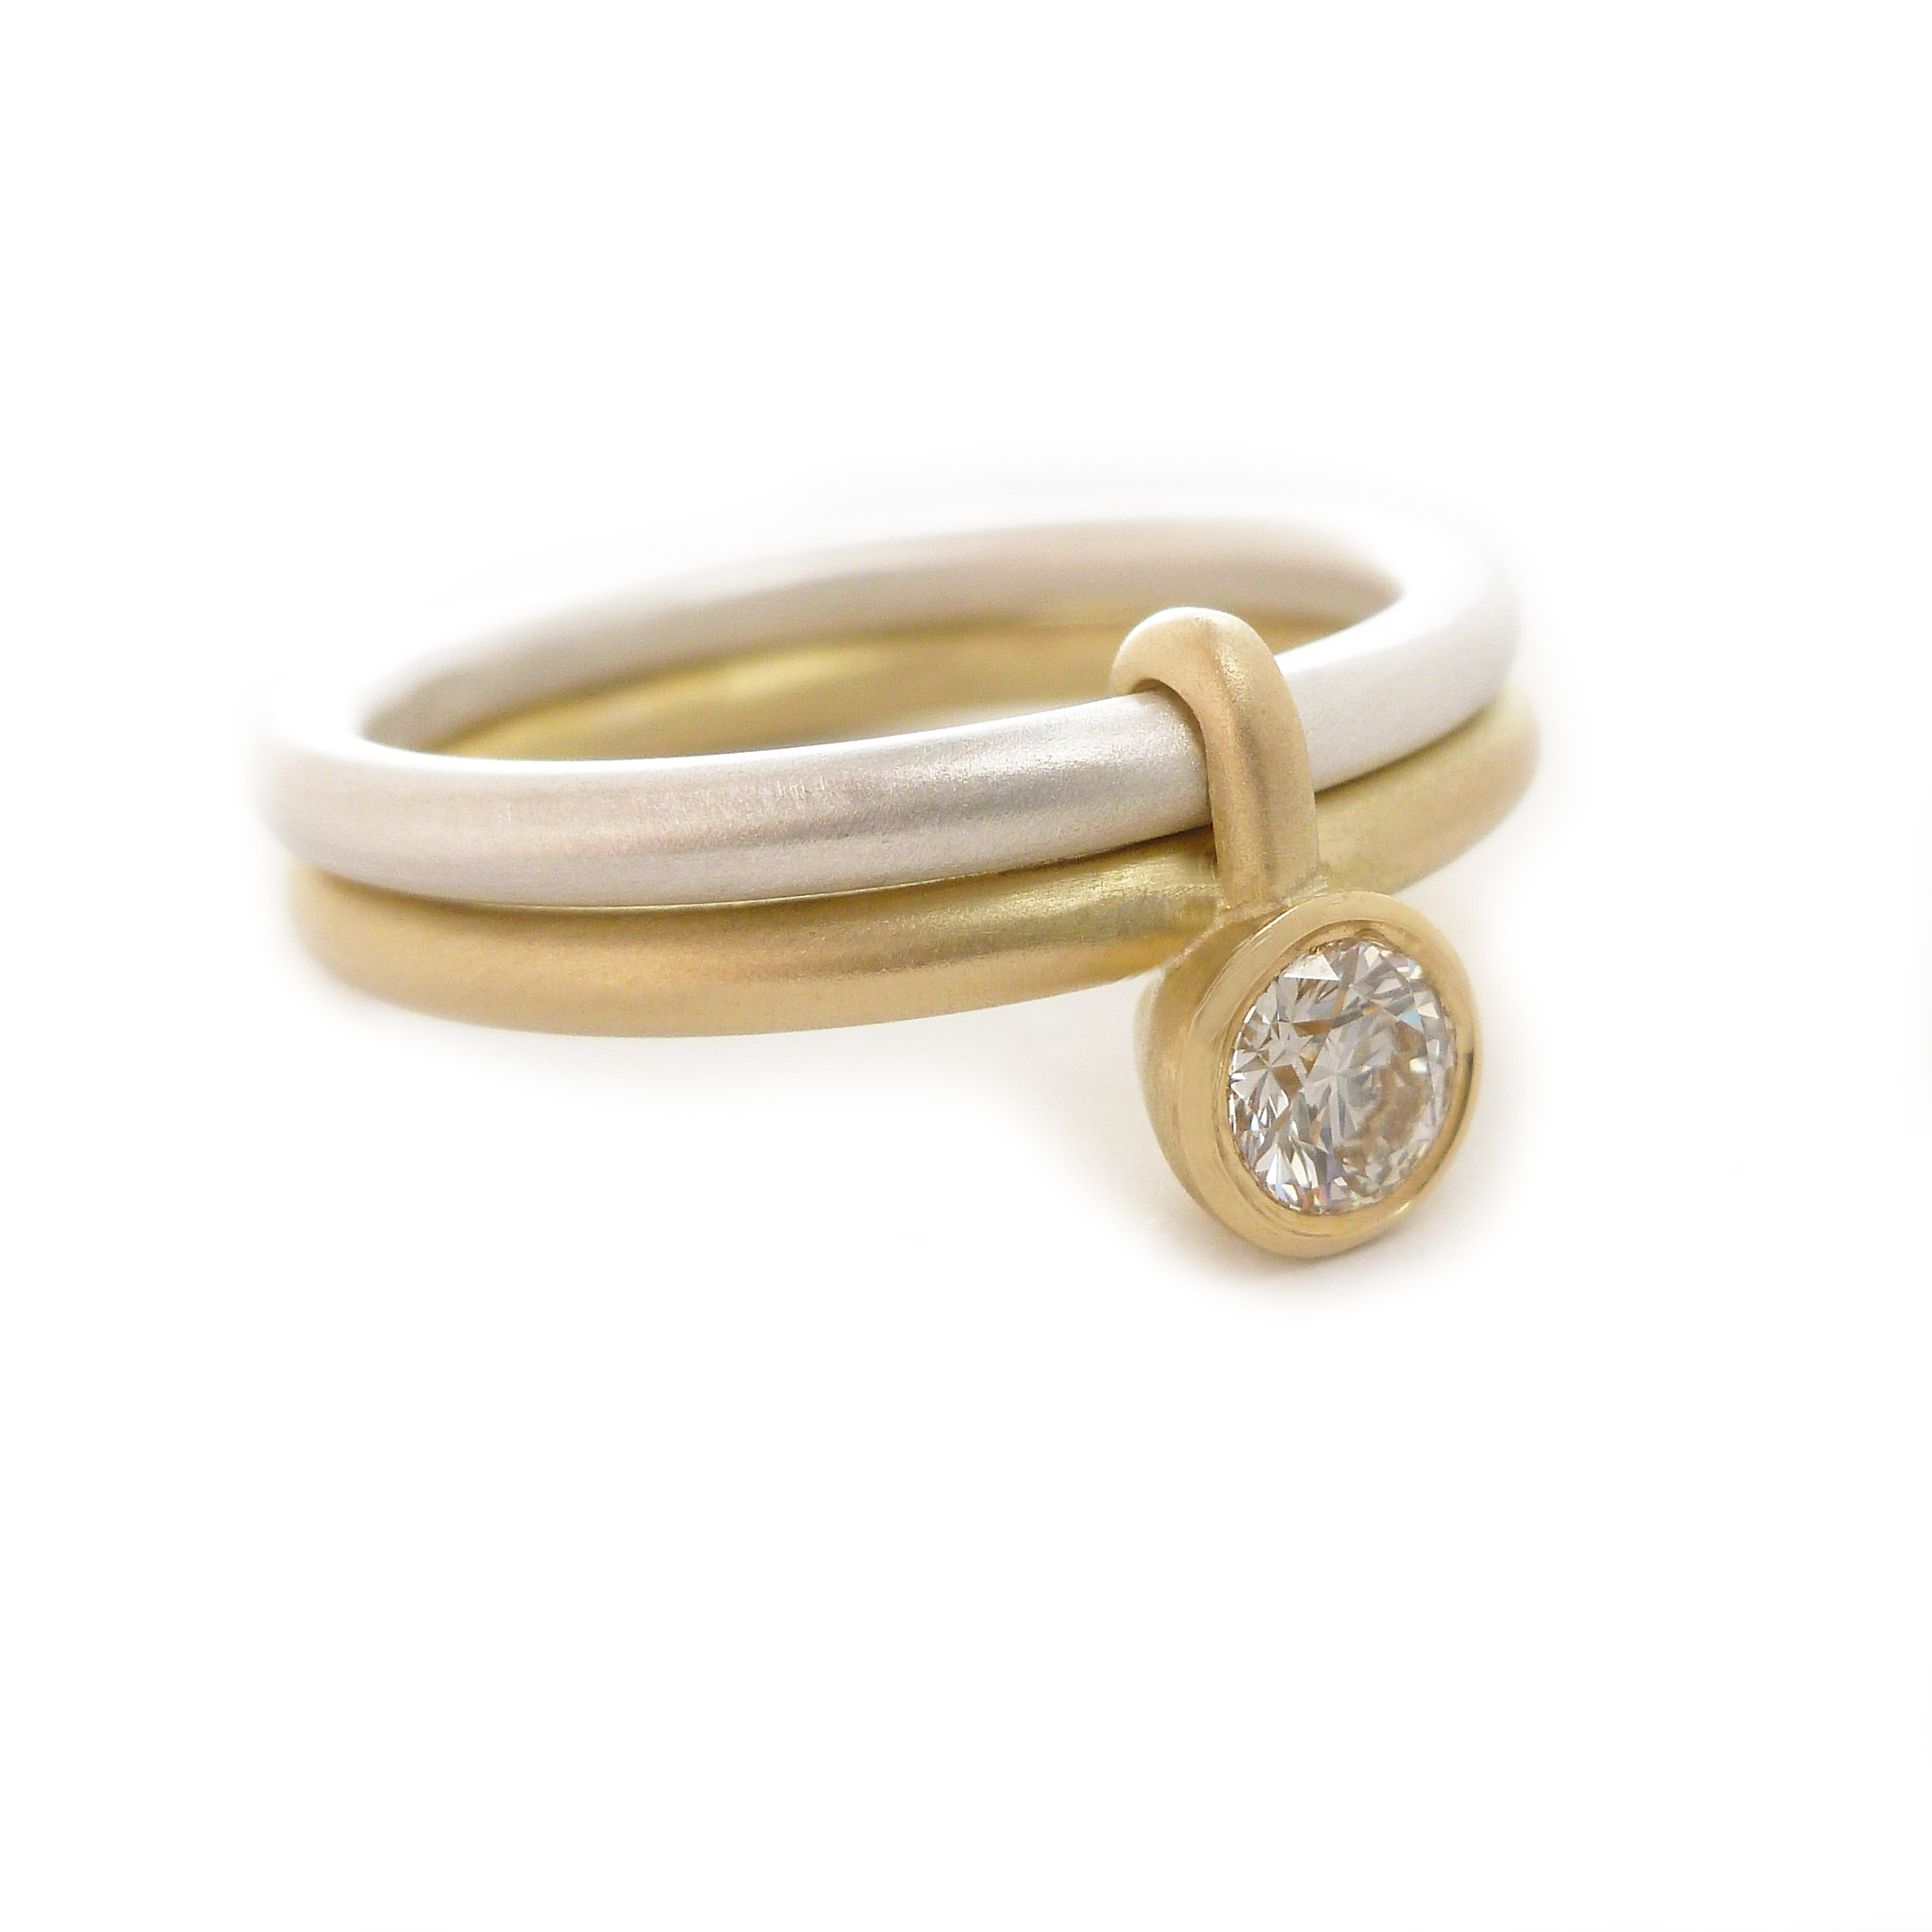 detail ring diamonds made hand artisan wedding with gold and luxury rings of